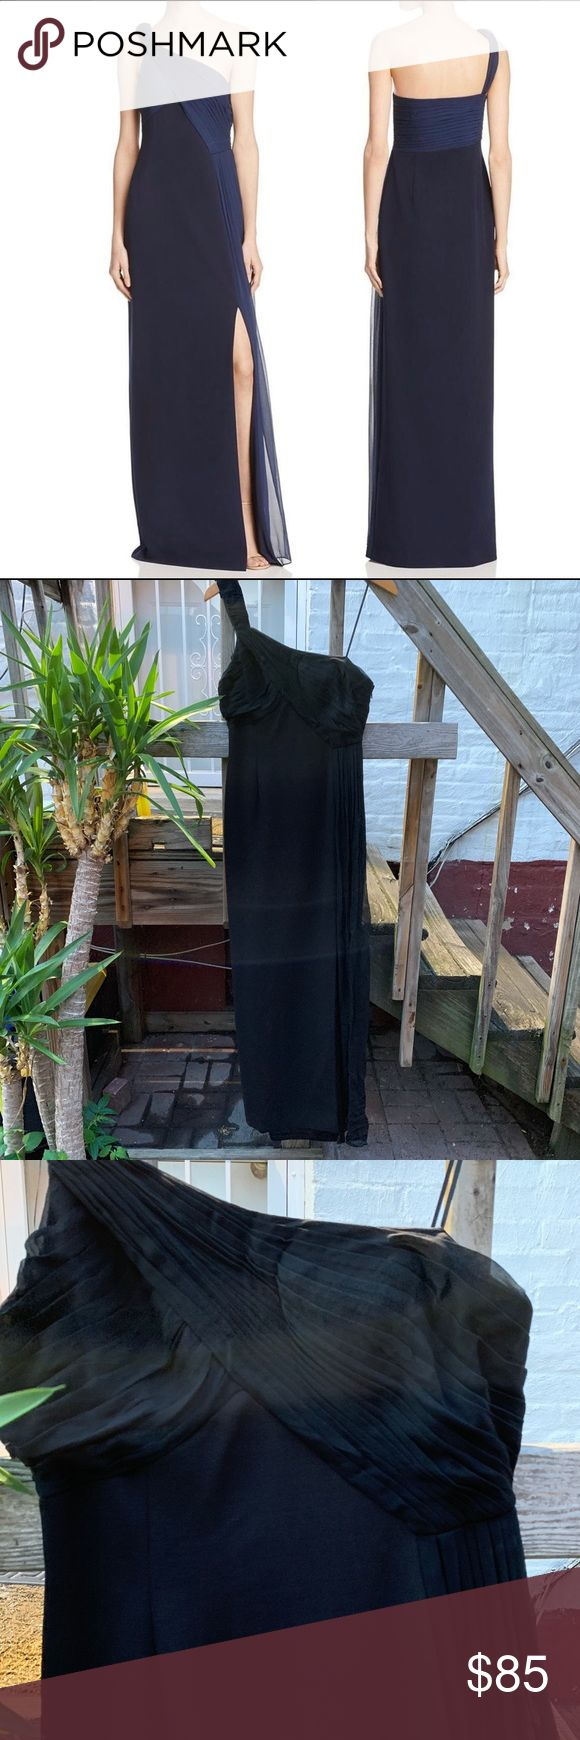 NWT Aiden Mattox One Shoulder Black Gown Beautiful one shoulder gown with slit! …